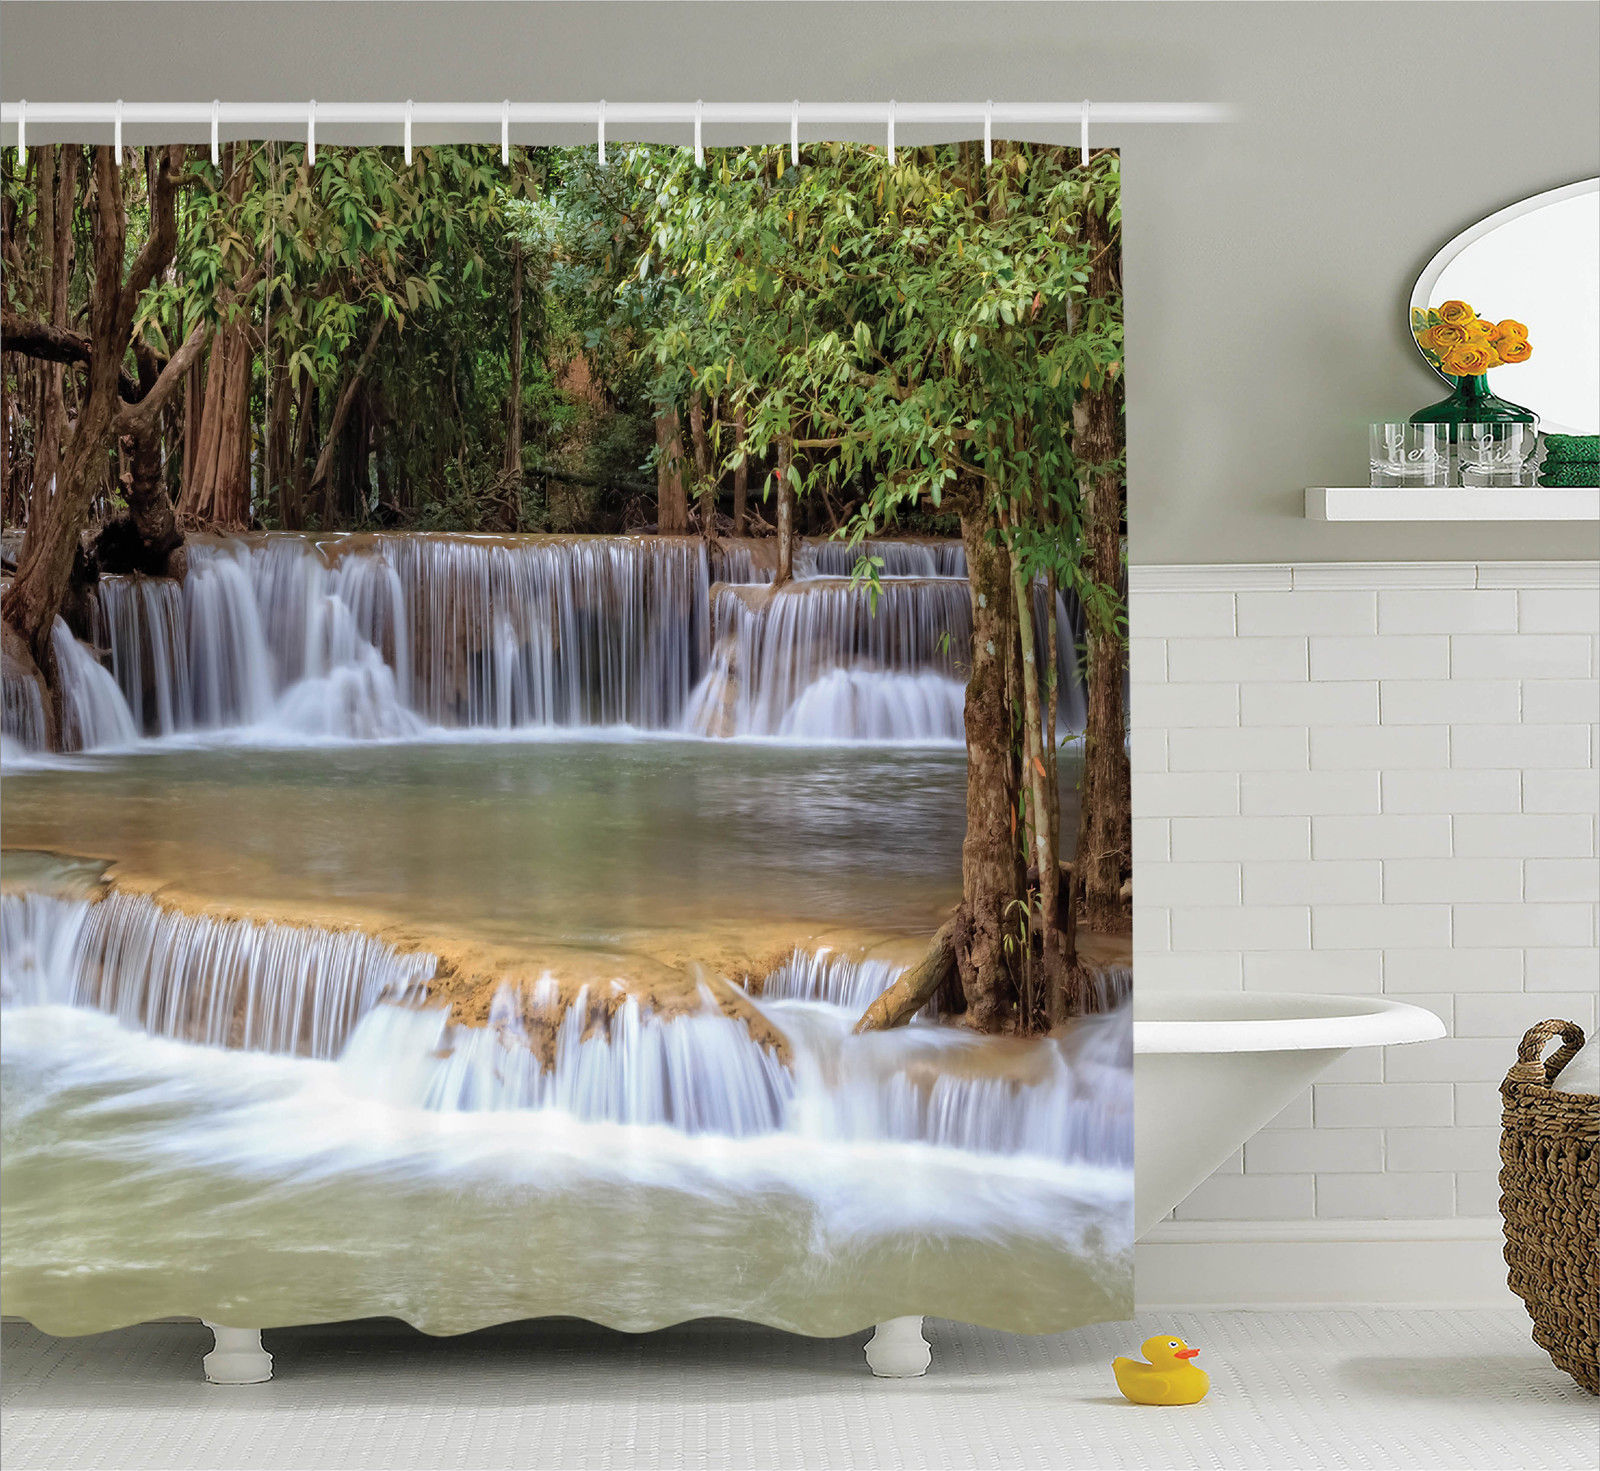 Rainforest Decorations Shower Curtain Set, Rainforest Waterfalls In Kanchanaburi Thailand Summer Travel Exotic Lands, Bathroom Accessories, 69W X 70L Inches, Green Brown Grey By Ambesonne